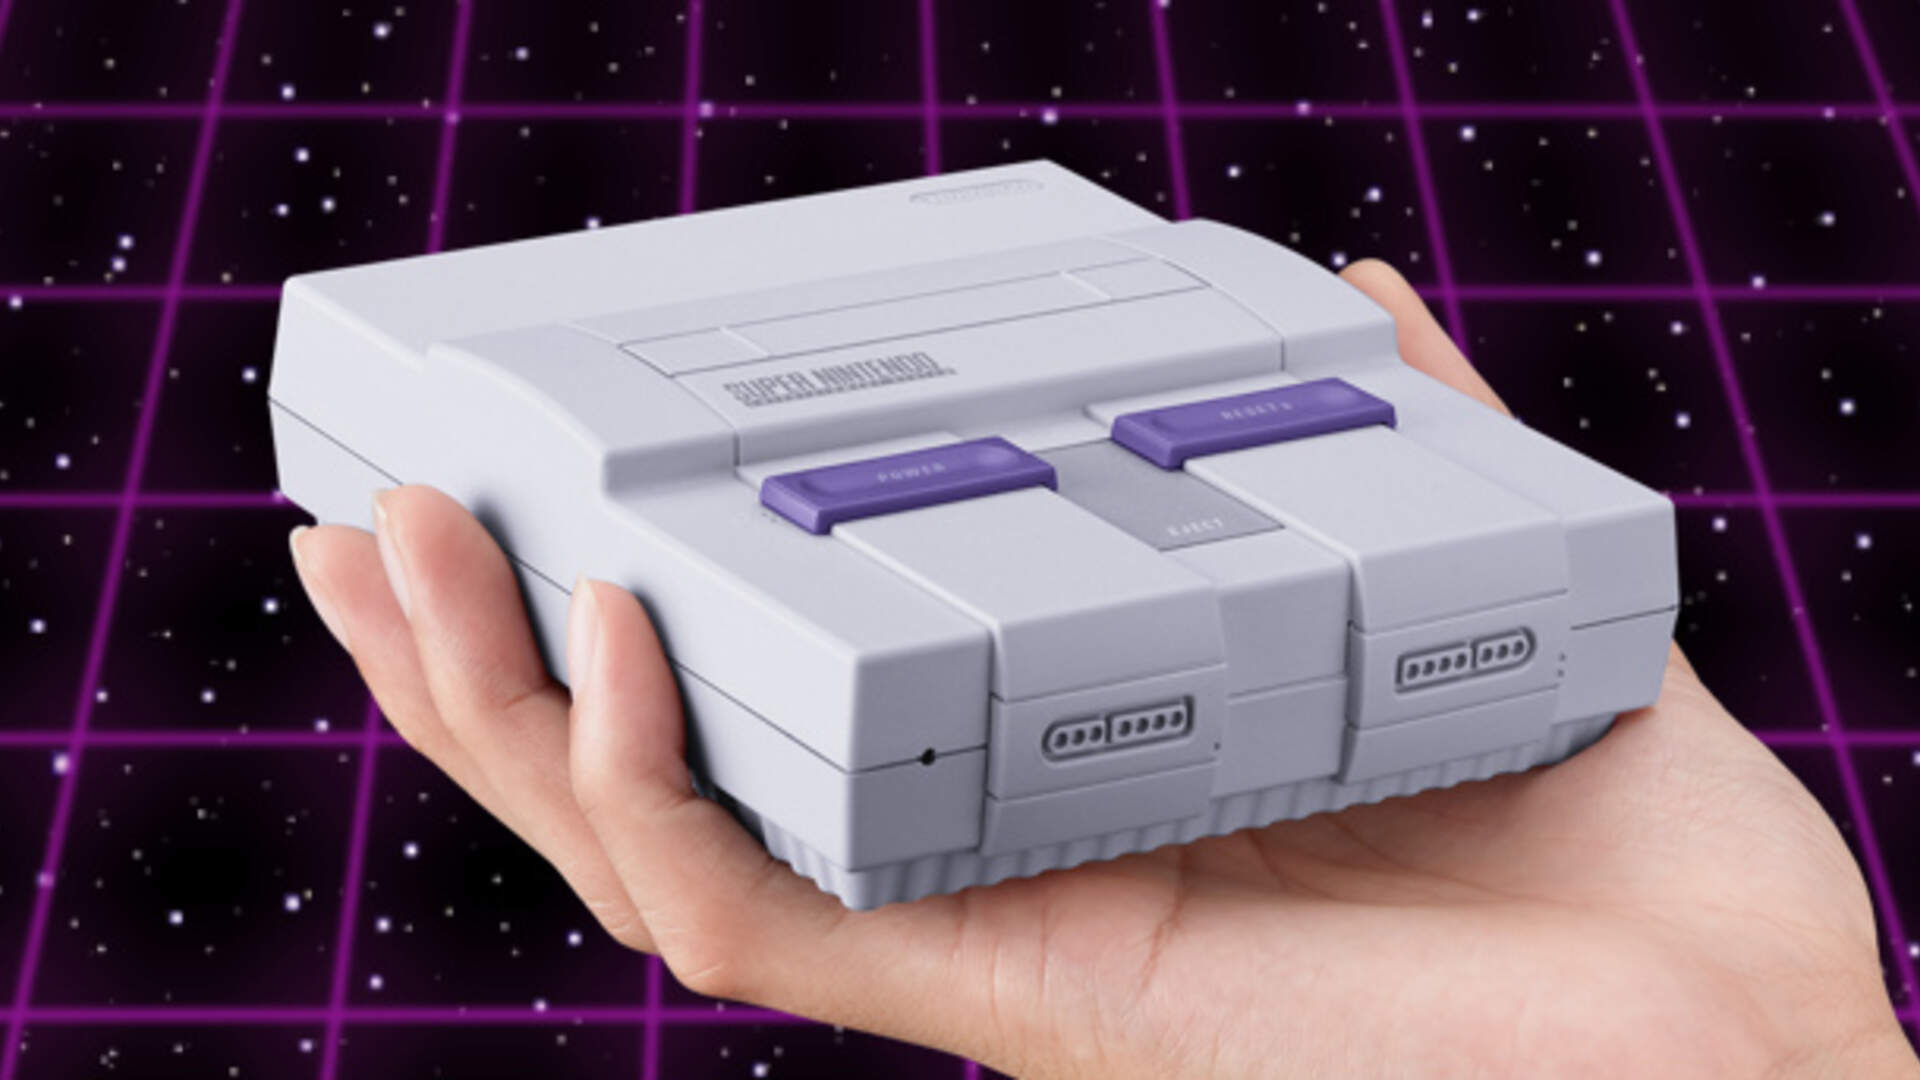 SNES Classic Consoles Available in Select Cities Through Amazon Prime Now